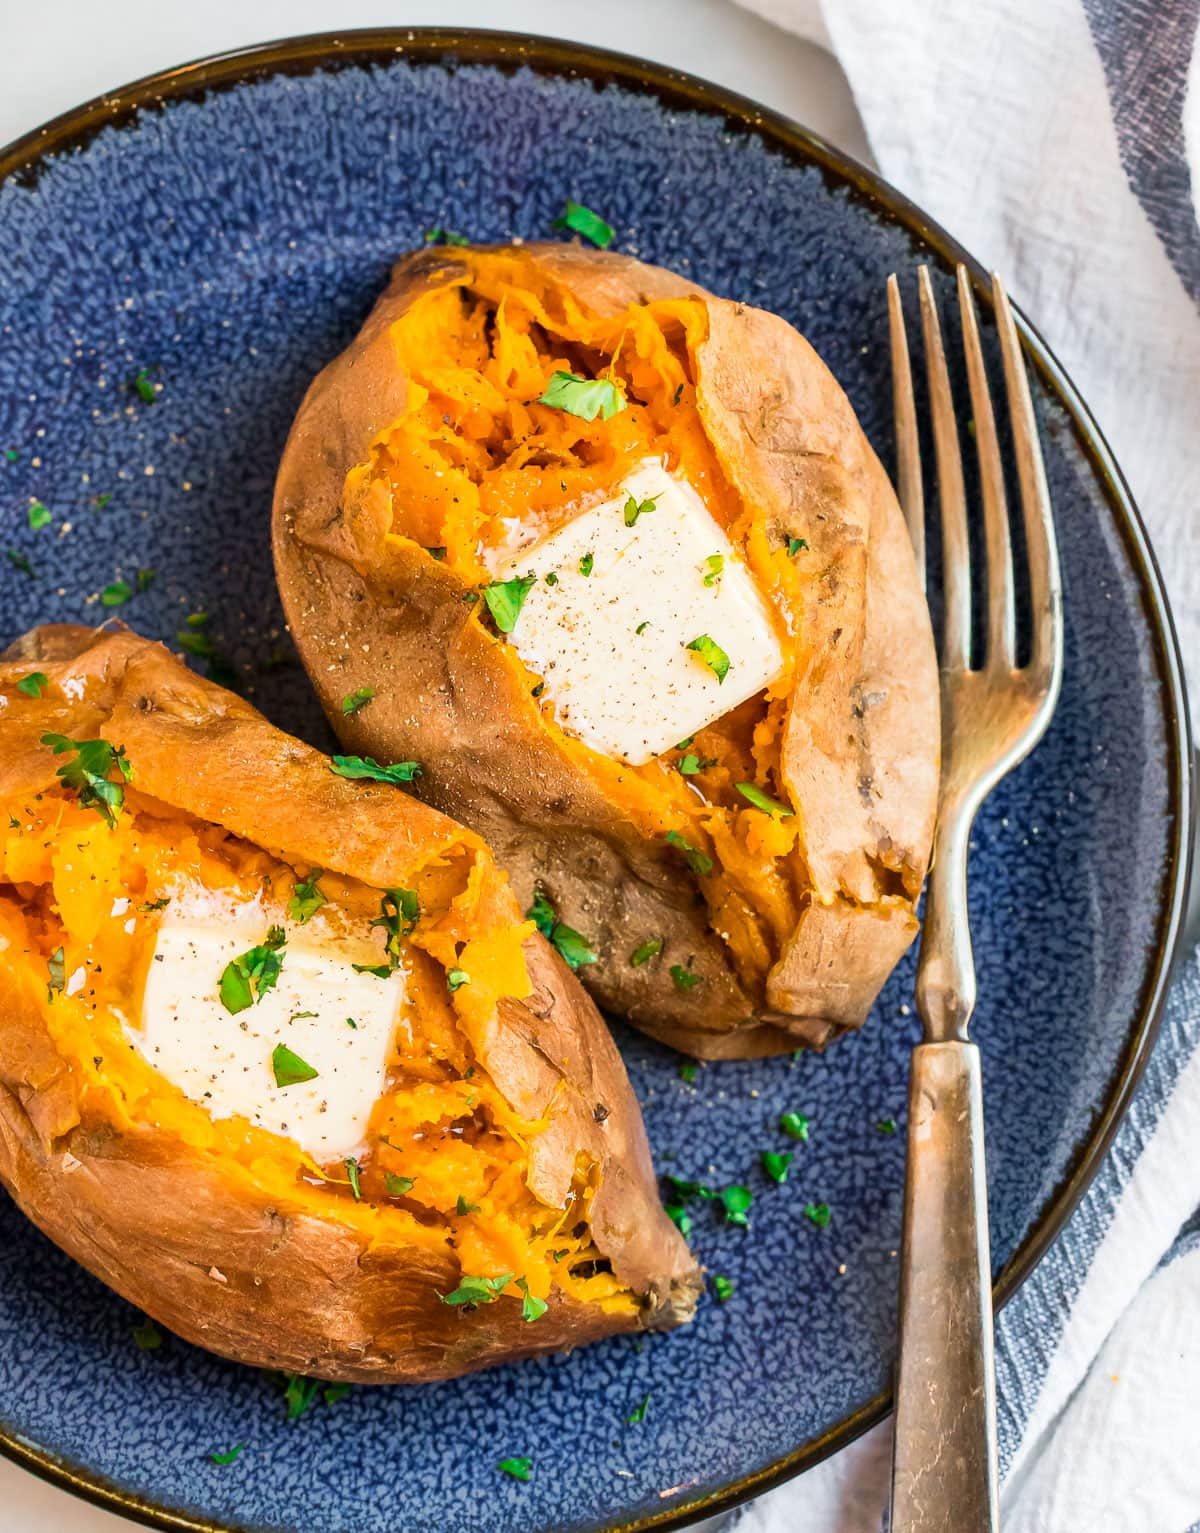 Sweet potatoes served on a blue plate with butter